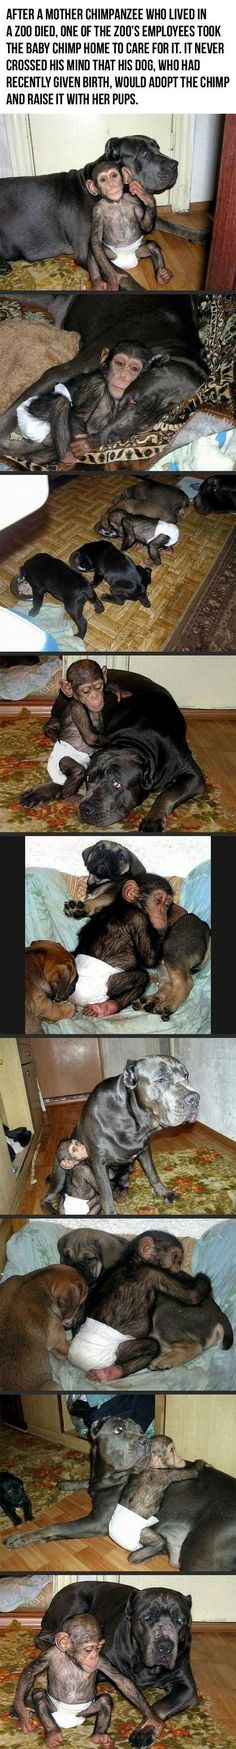 Dogs, puppies, and a baby monkey... too many awwws